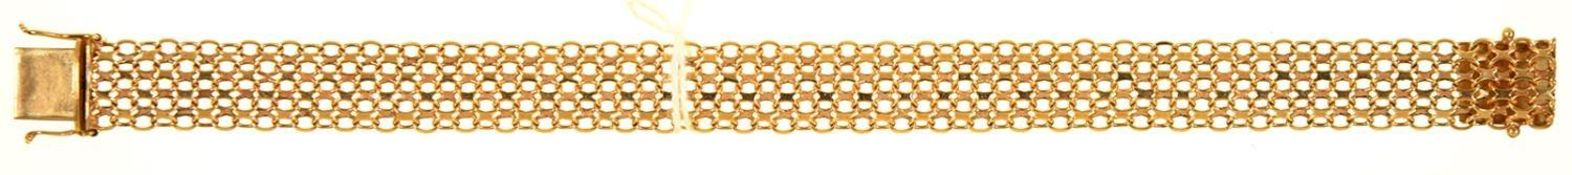 A 9CT GOLD BRACELET, 193MM L, IMPORT MARKED LONDON 1977, 12.5G Good condition